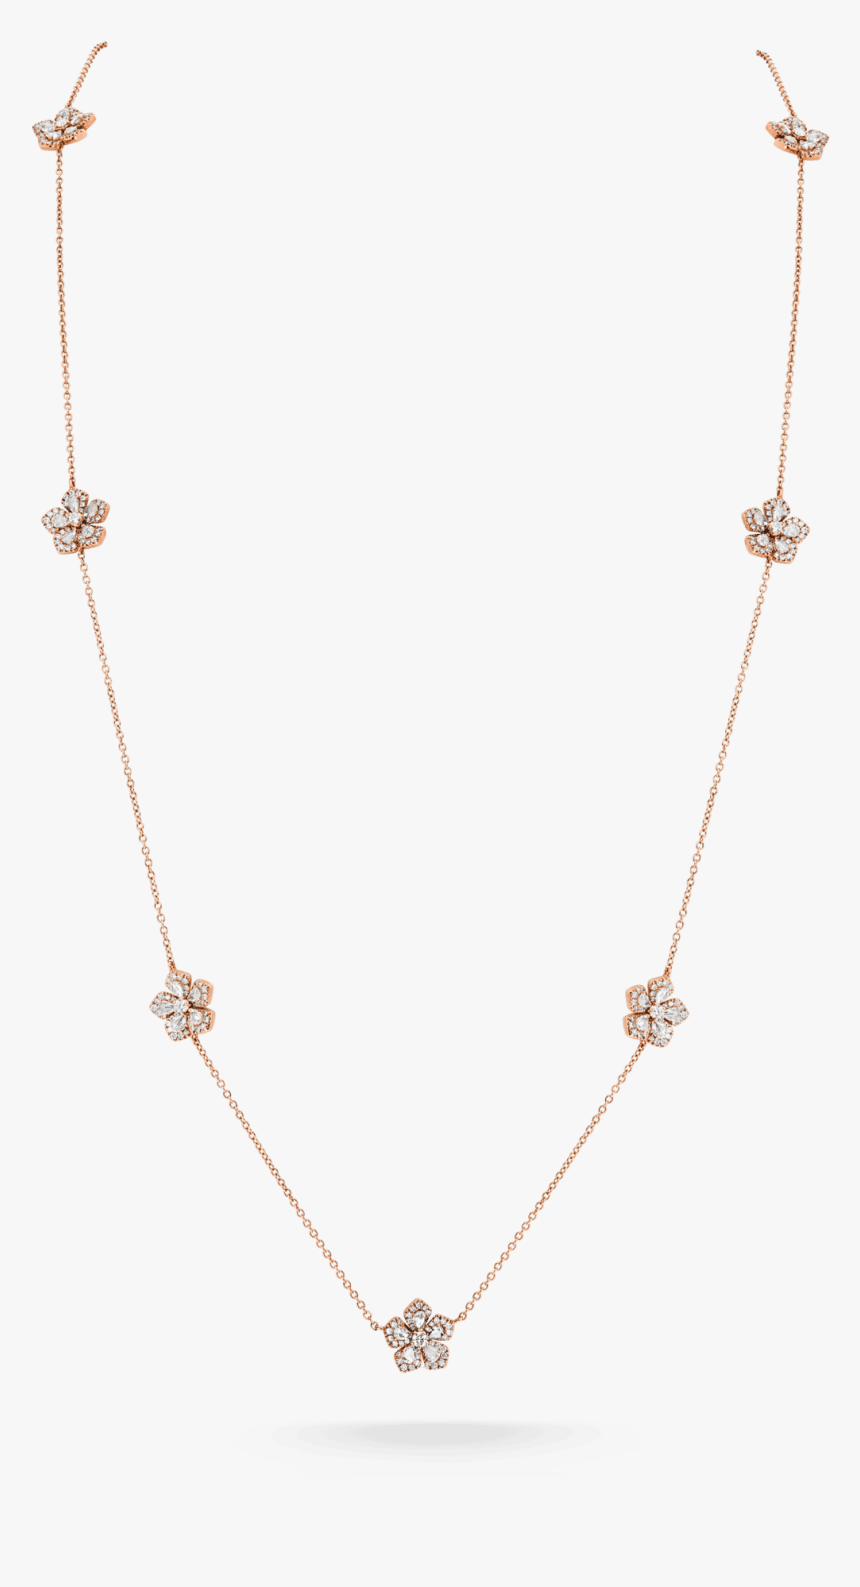 Ms 10 009 04 F1 Miss Daisy Necklace - 14k Gold Necklace With Pearls Bloomingdales, HD Png Download, Free Download